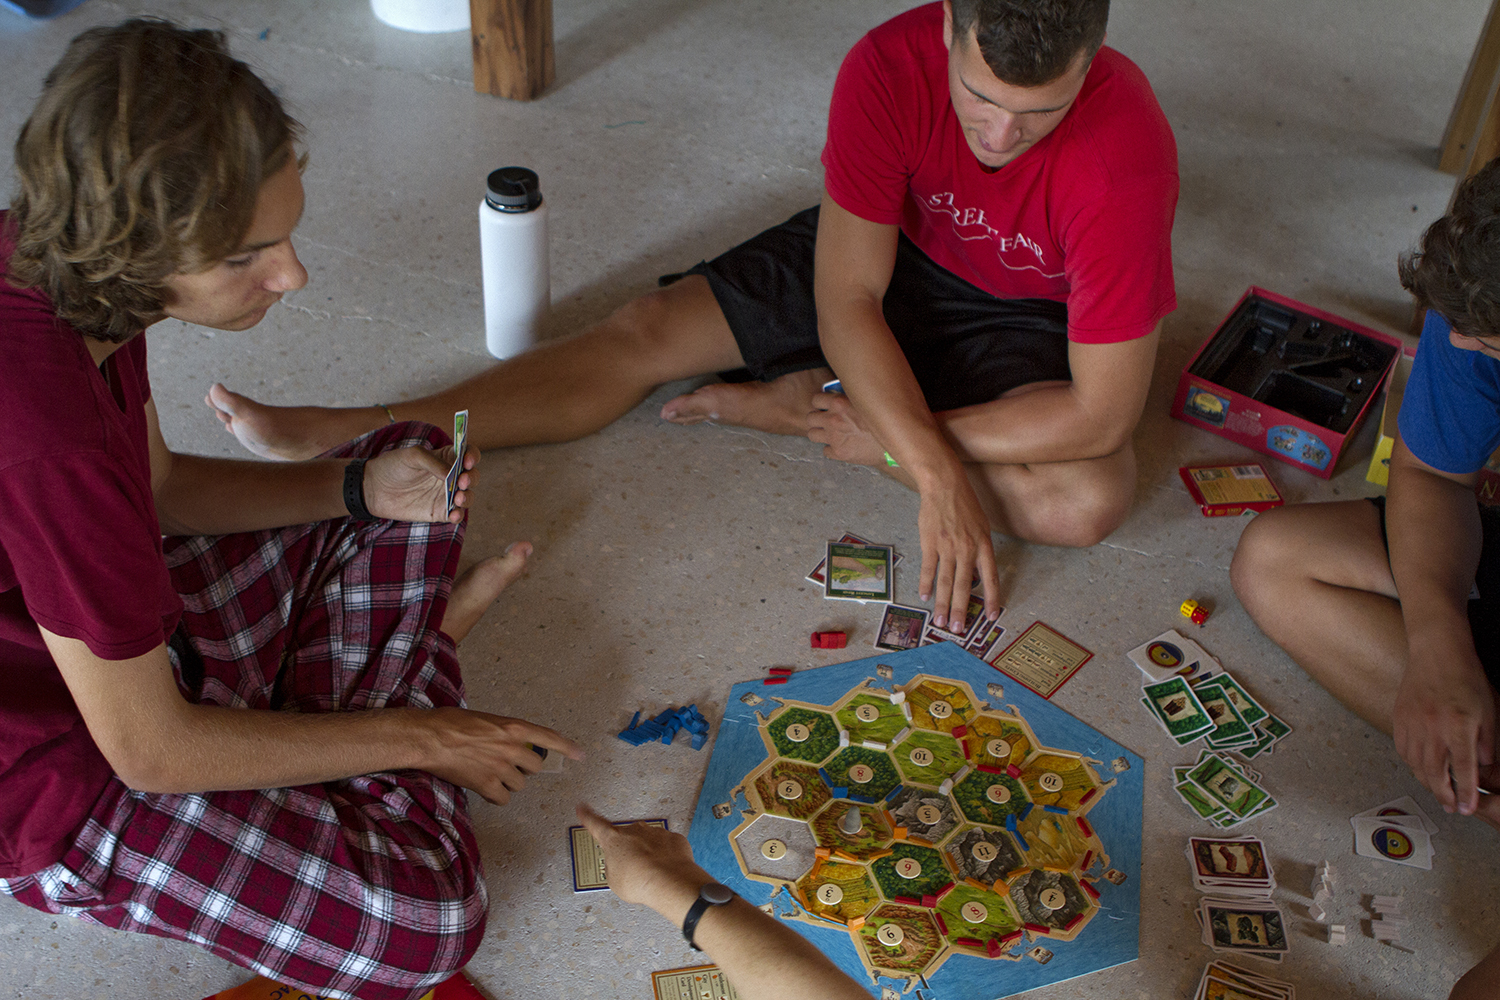 Settlers of Catan was an alternative to the movie